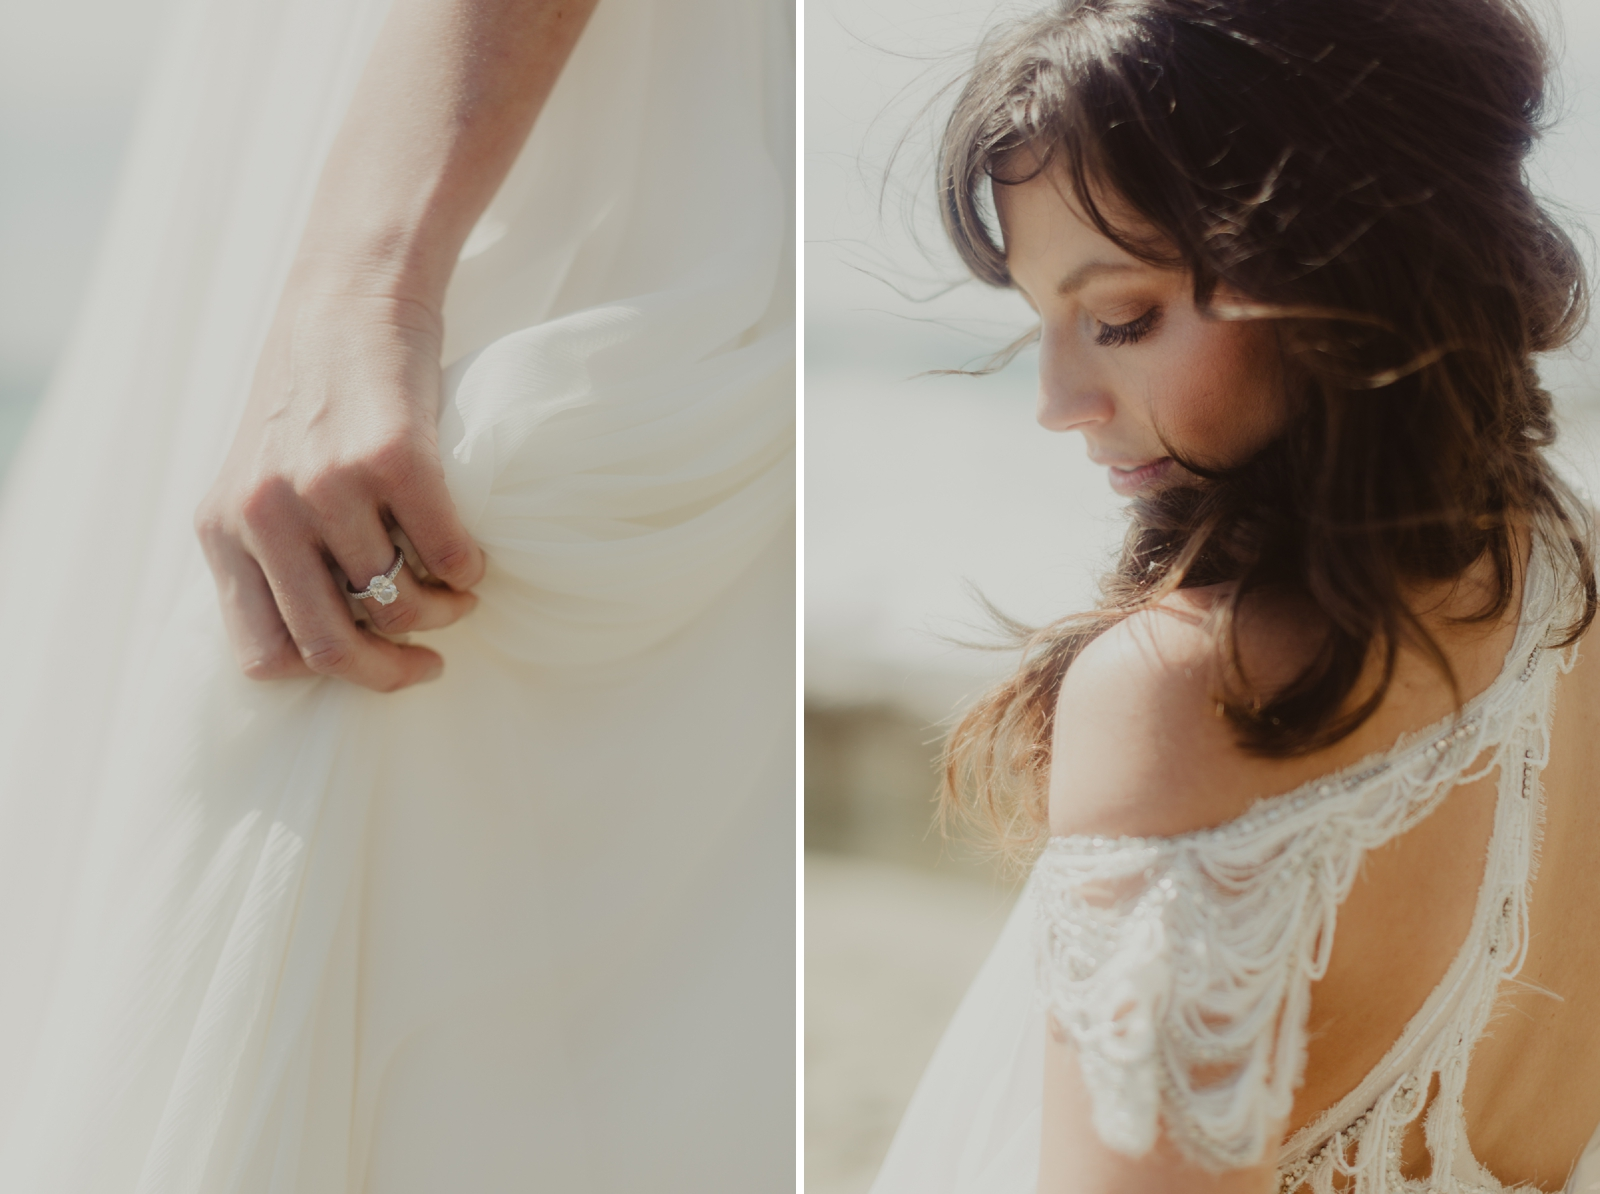 Kevin+Angie-Married-Blog-00009.jpg